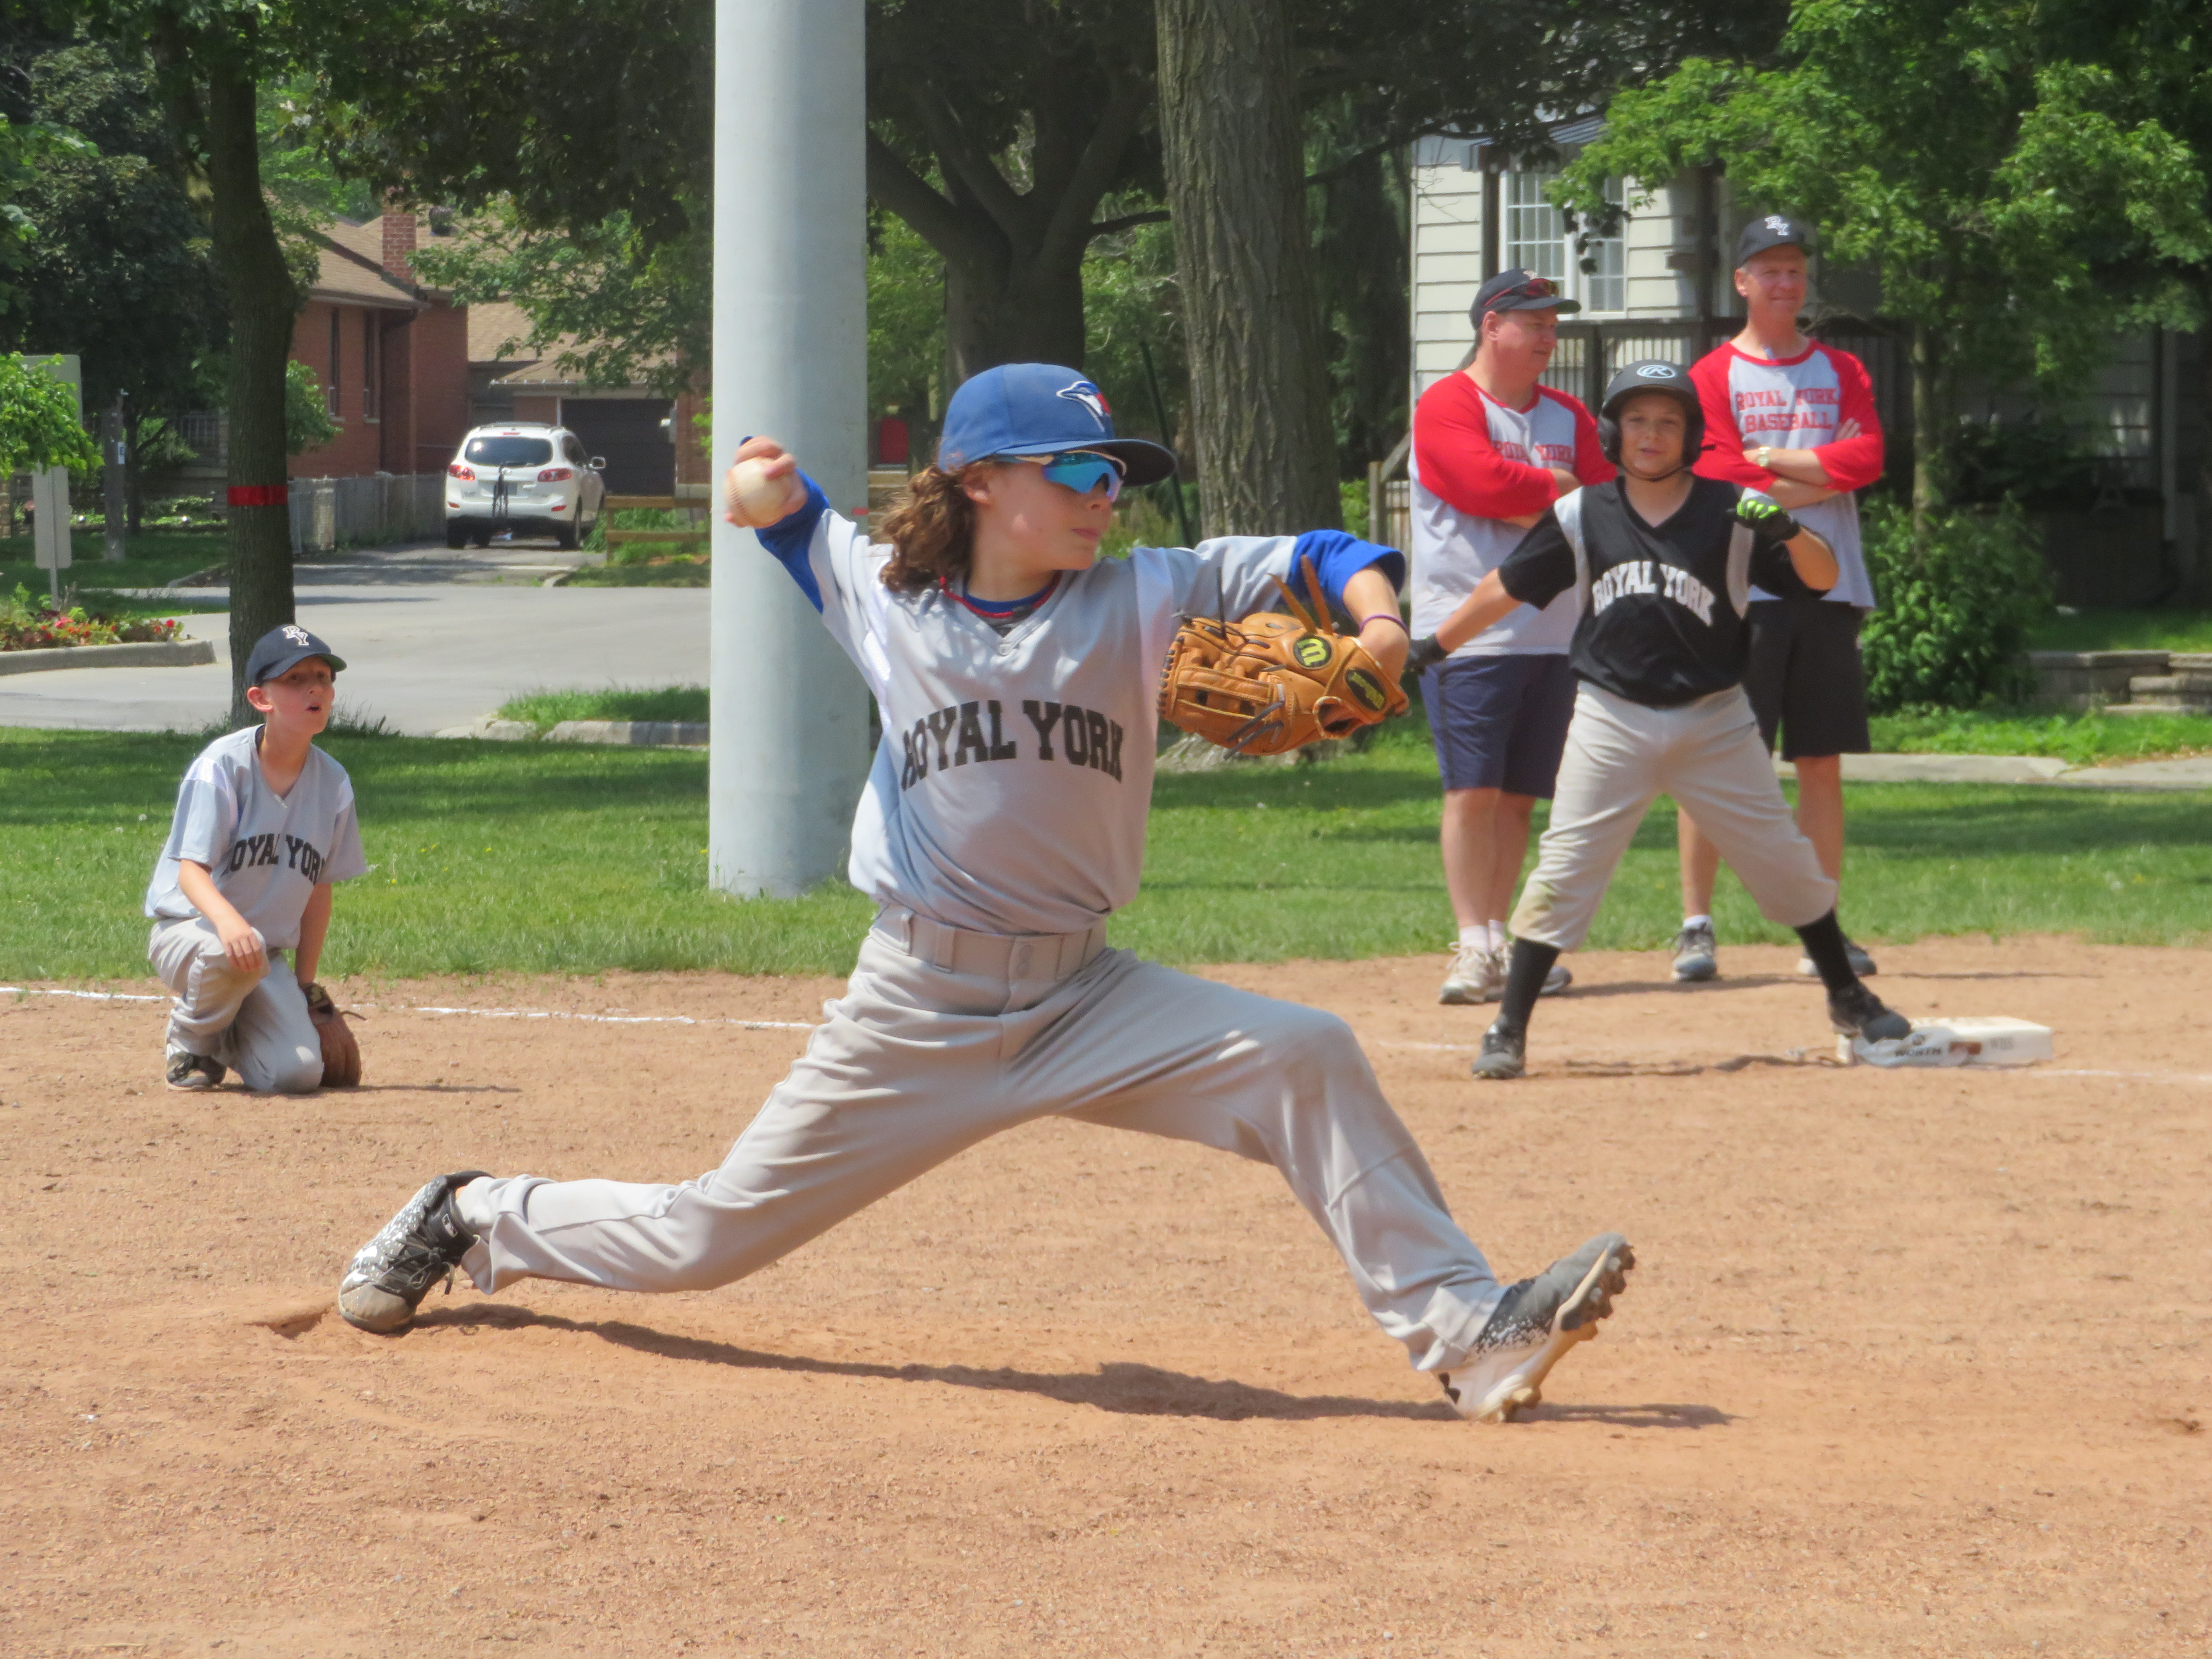 Owen Peterson cranking up the heater at a Mosquito game last Saturday!